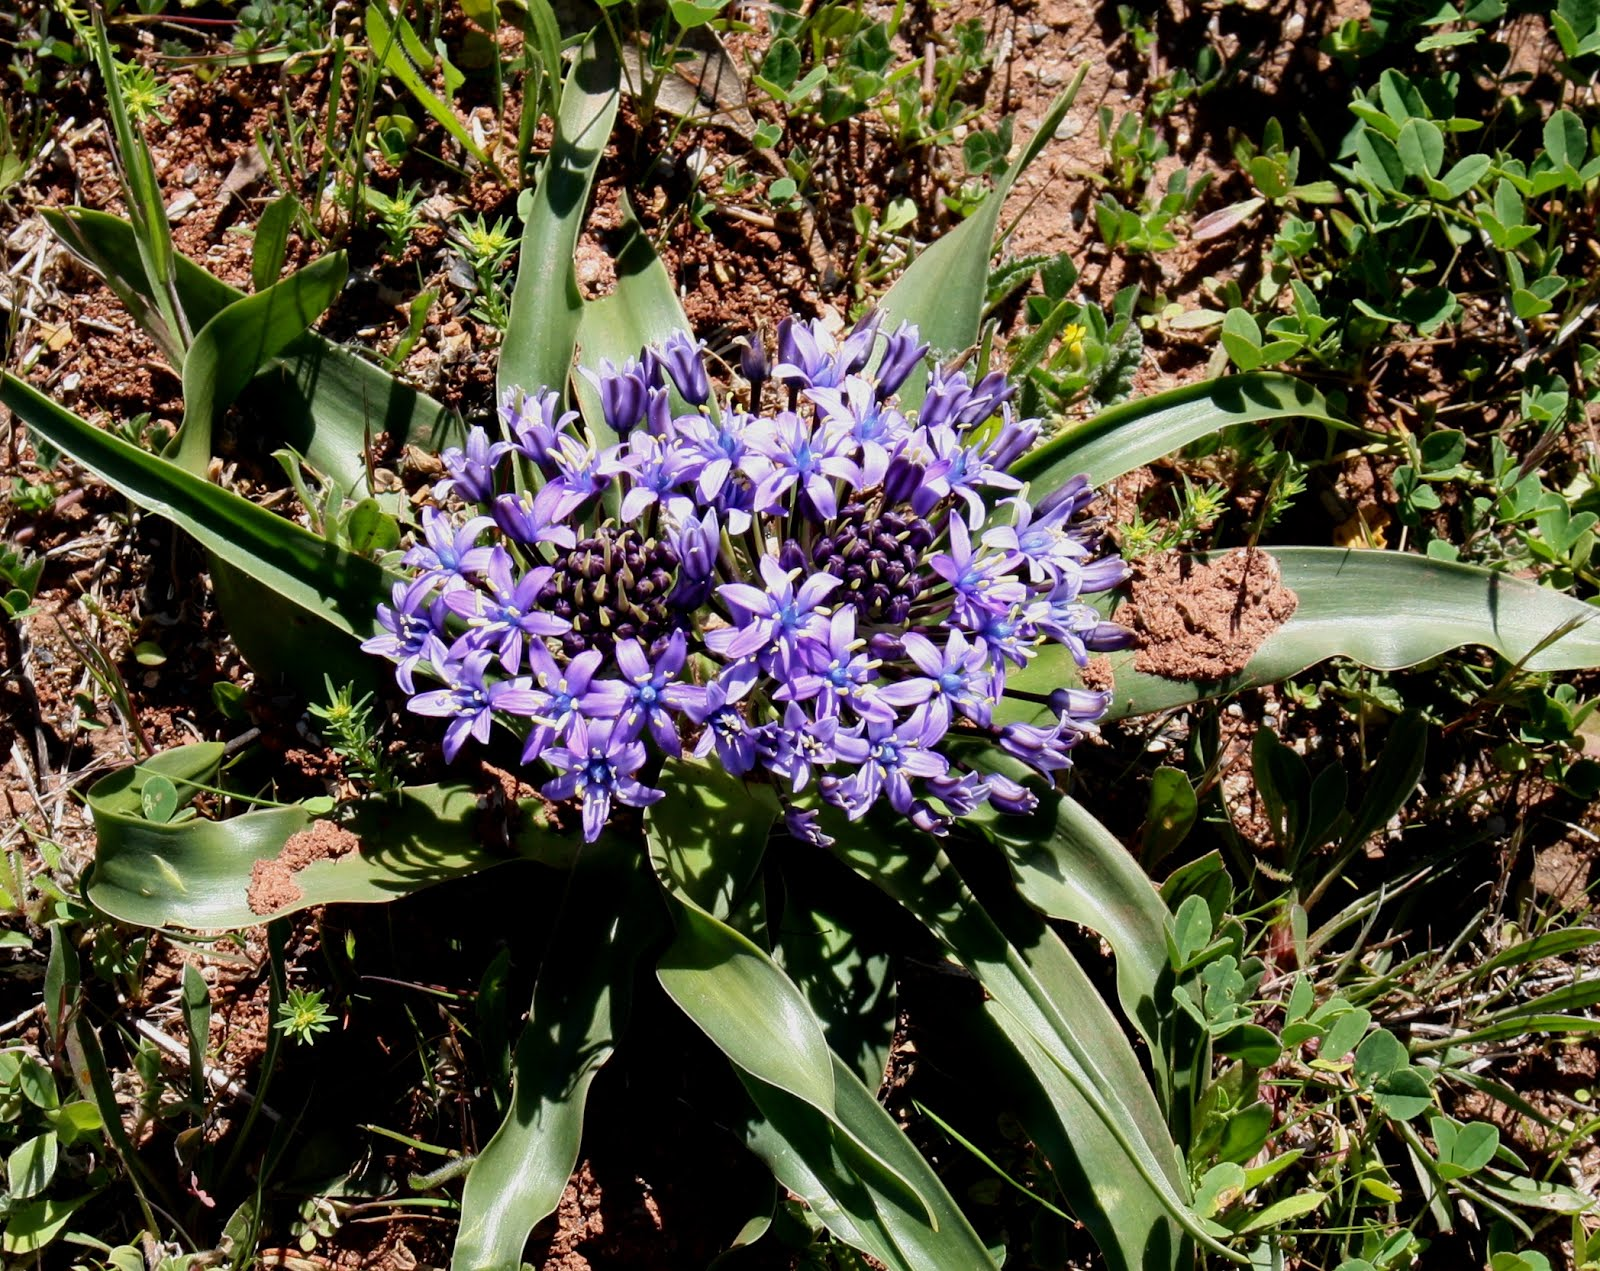 Scilla peruviana